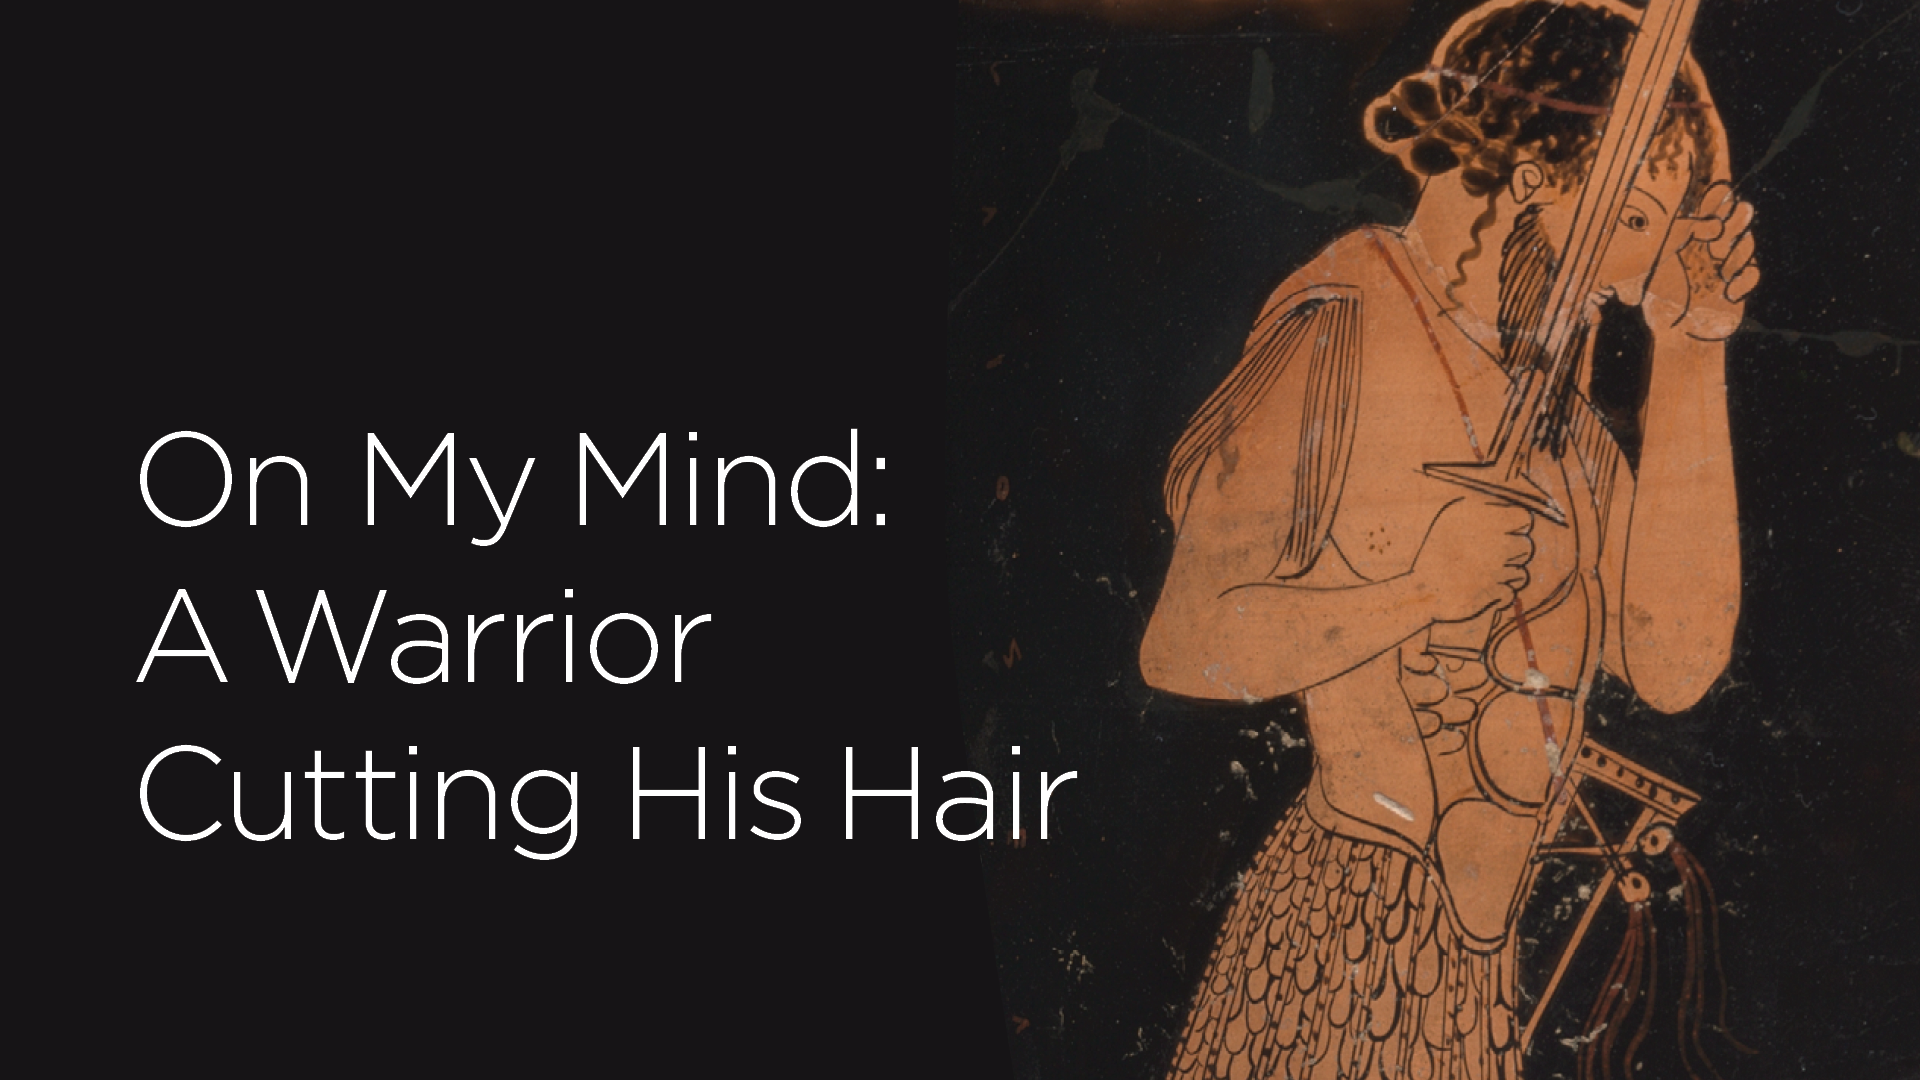 On My Mind: A Warrior Cutting his Hair